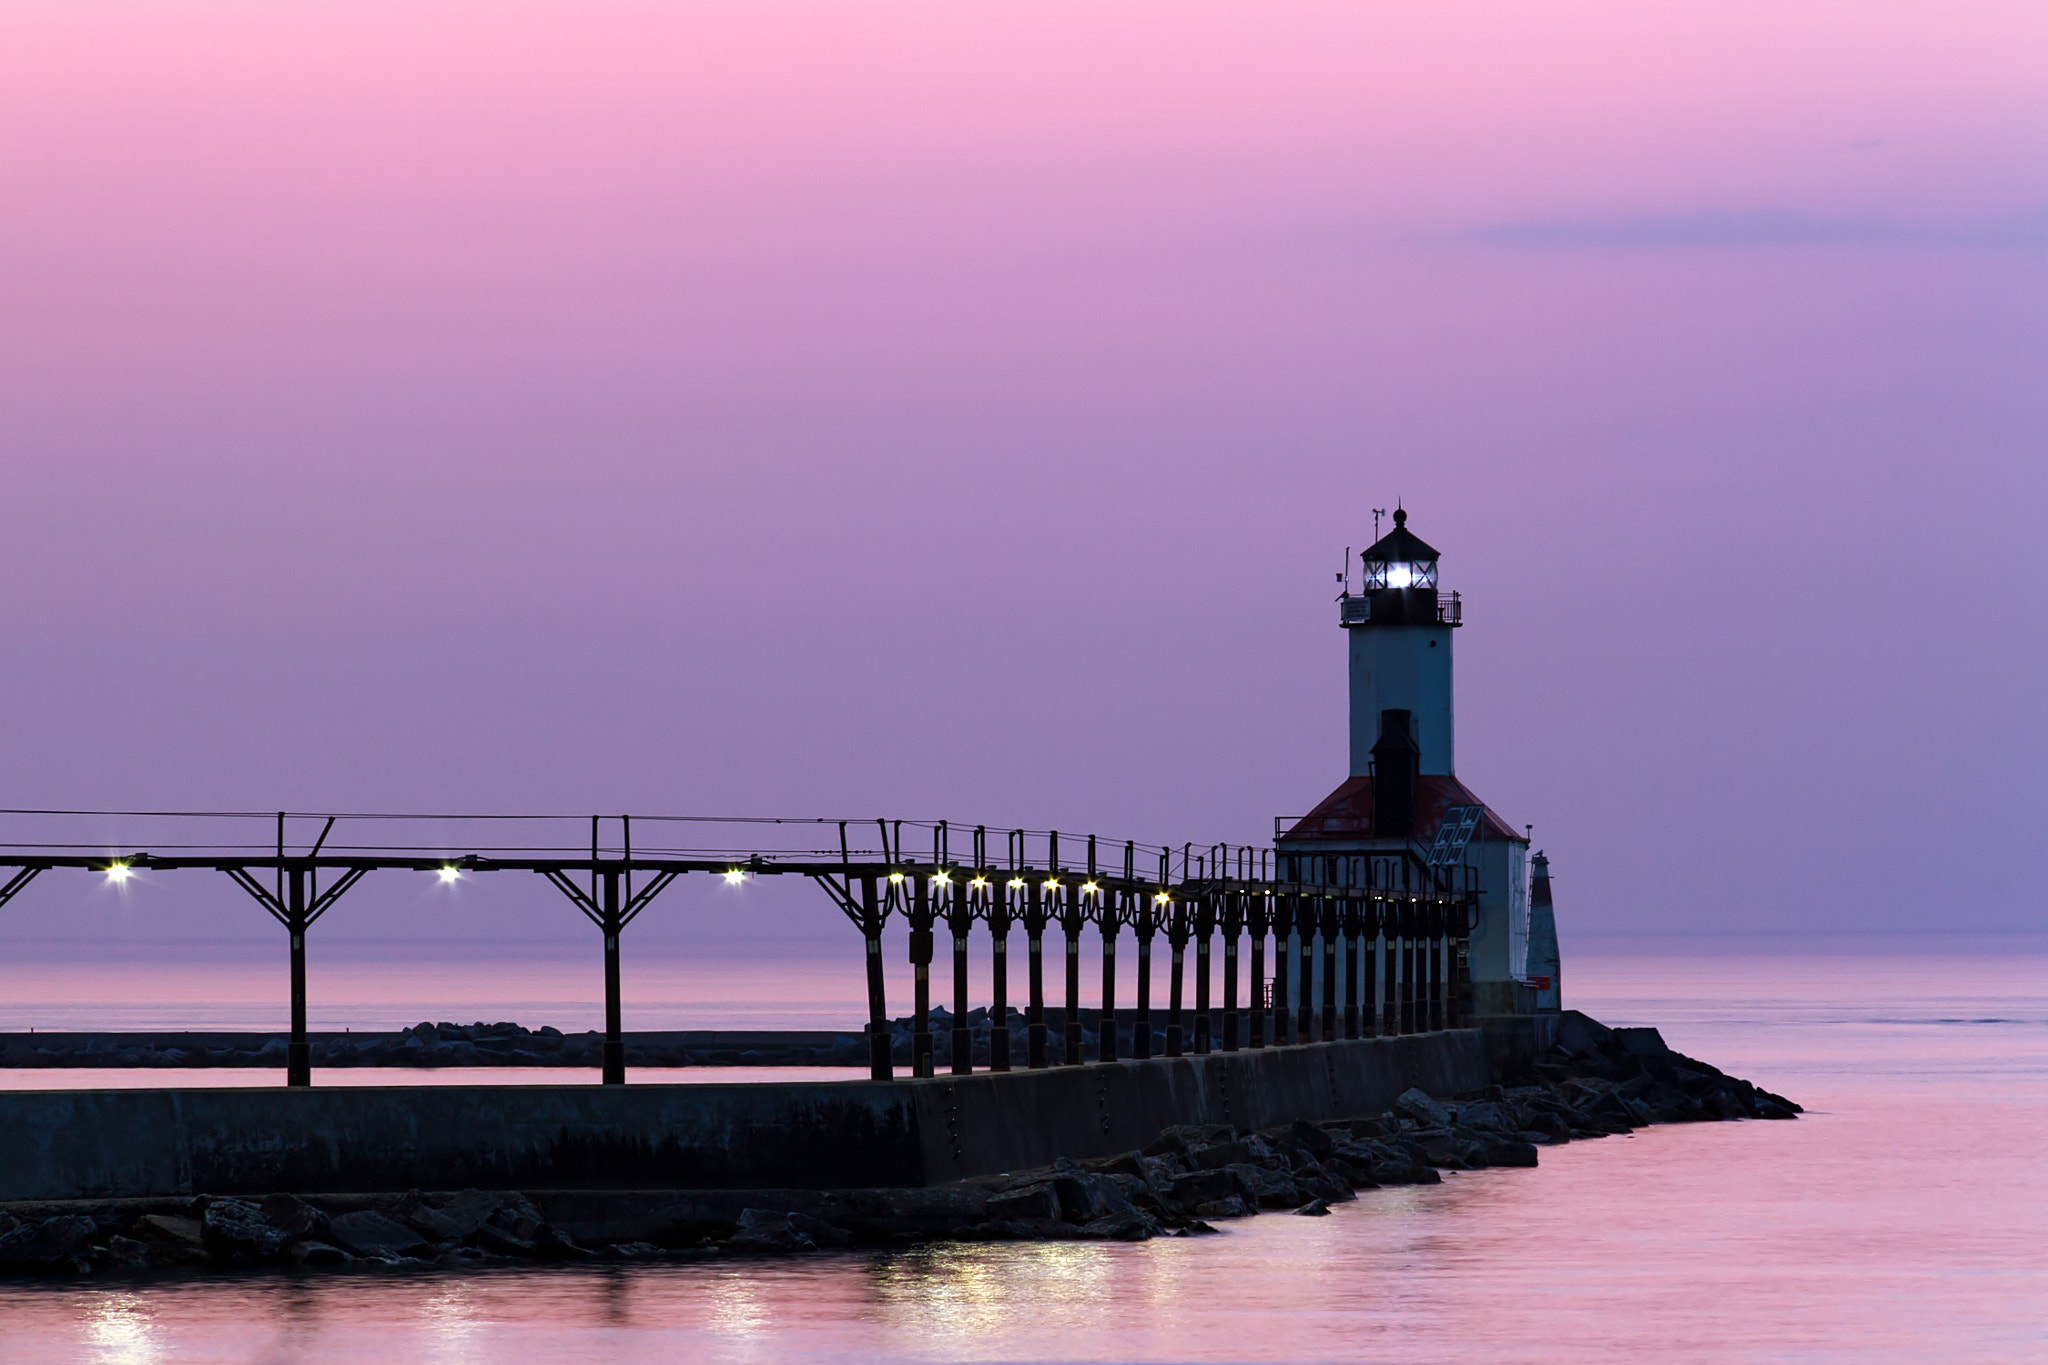 Photograph Michigan City Light at Twilight by Kenneth Keifer on 500px